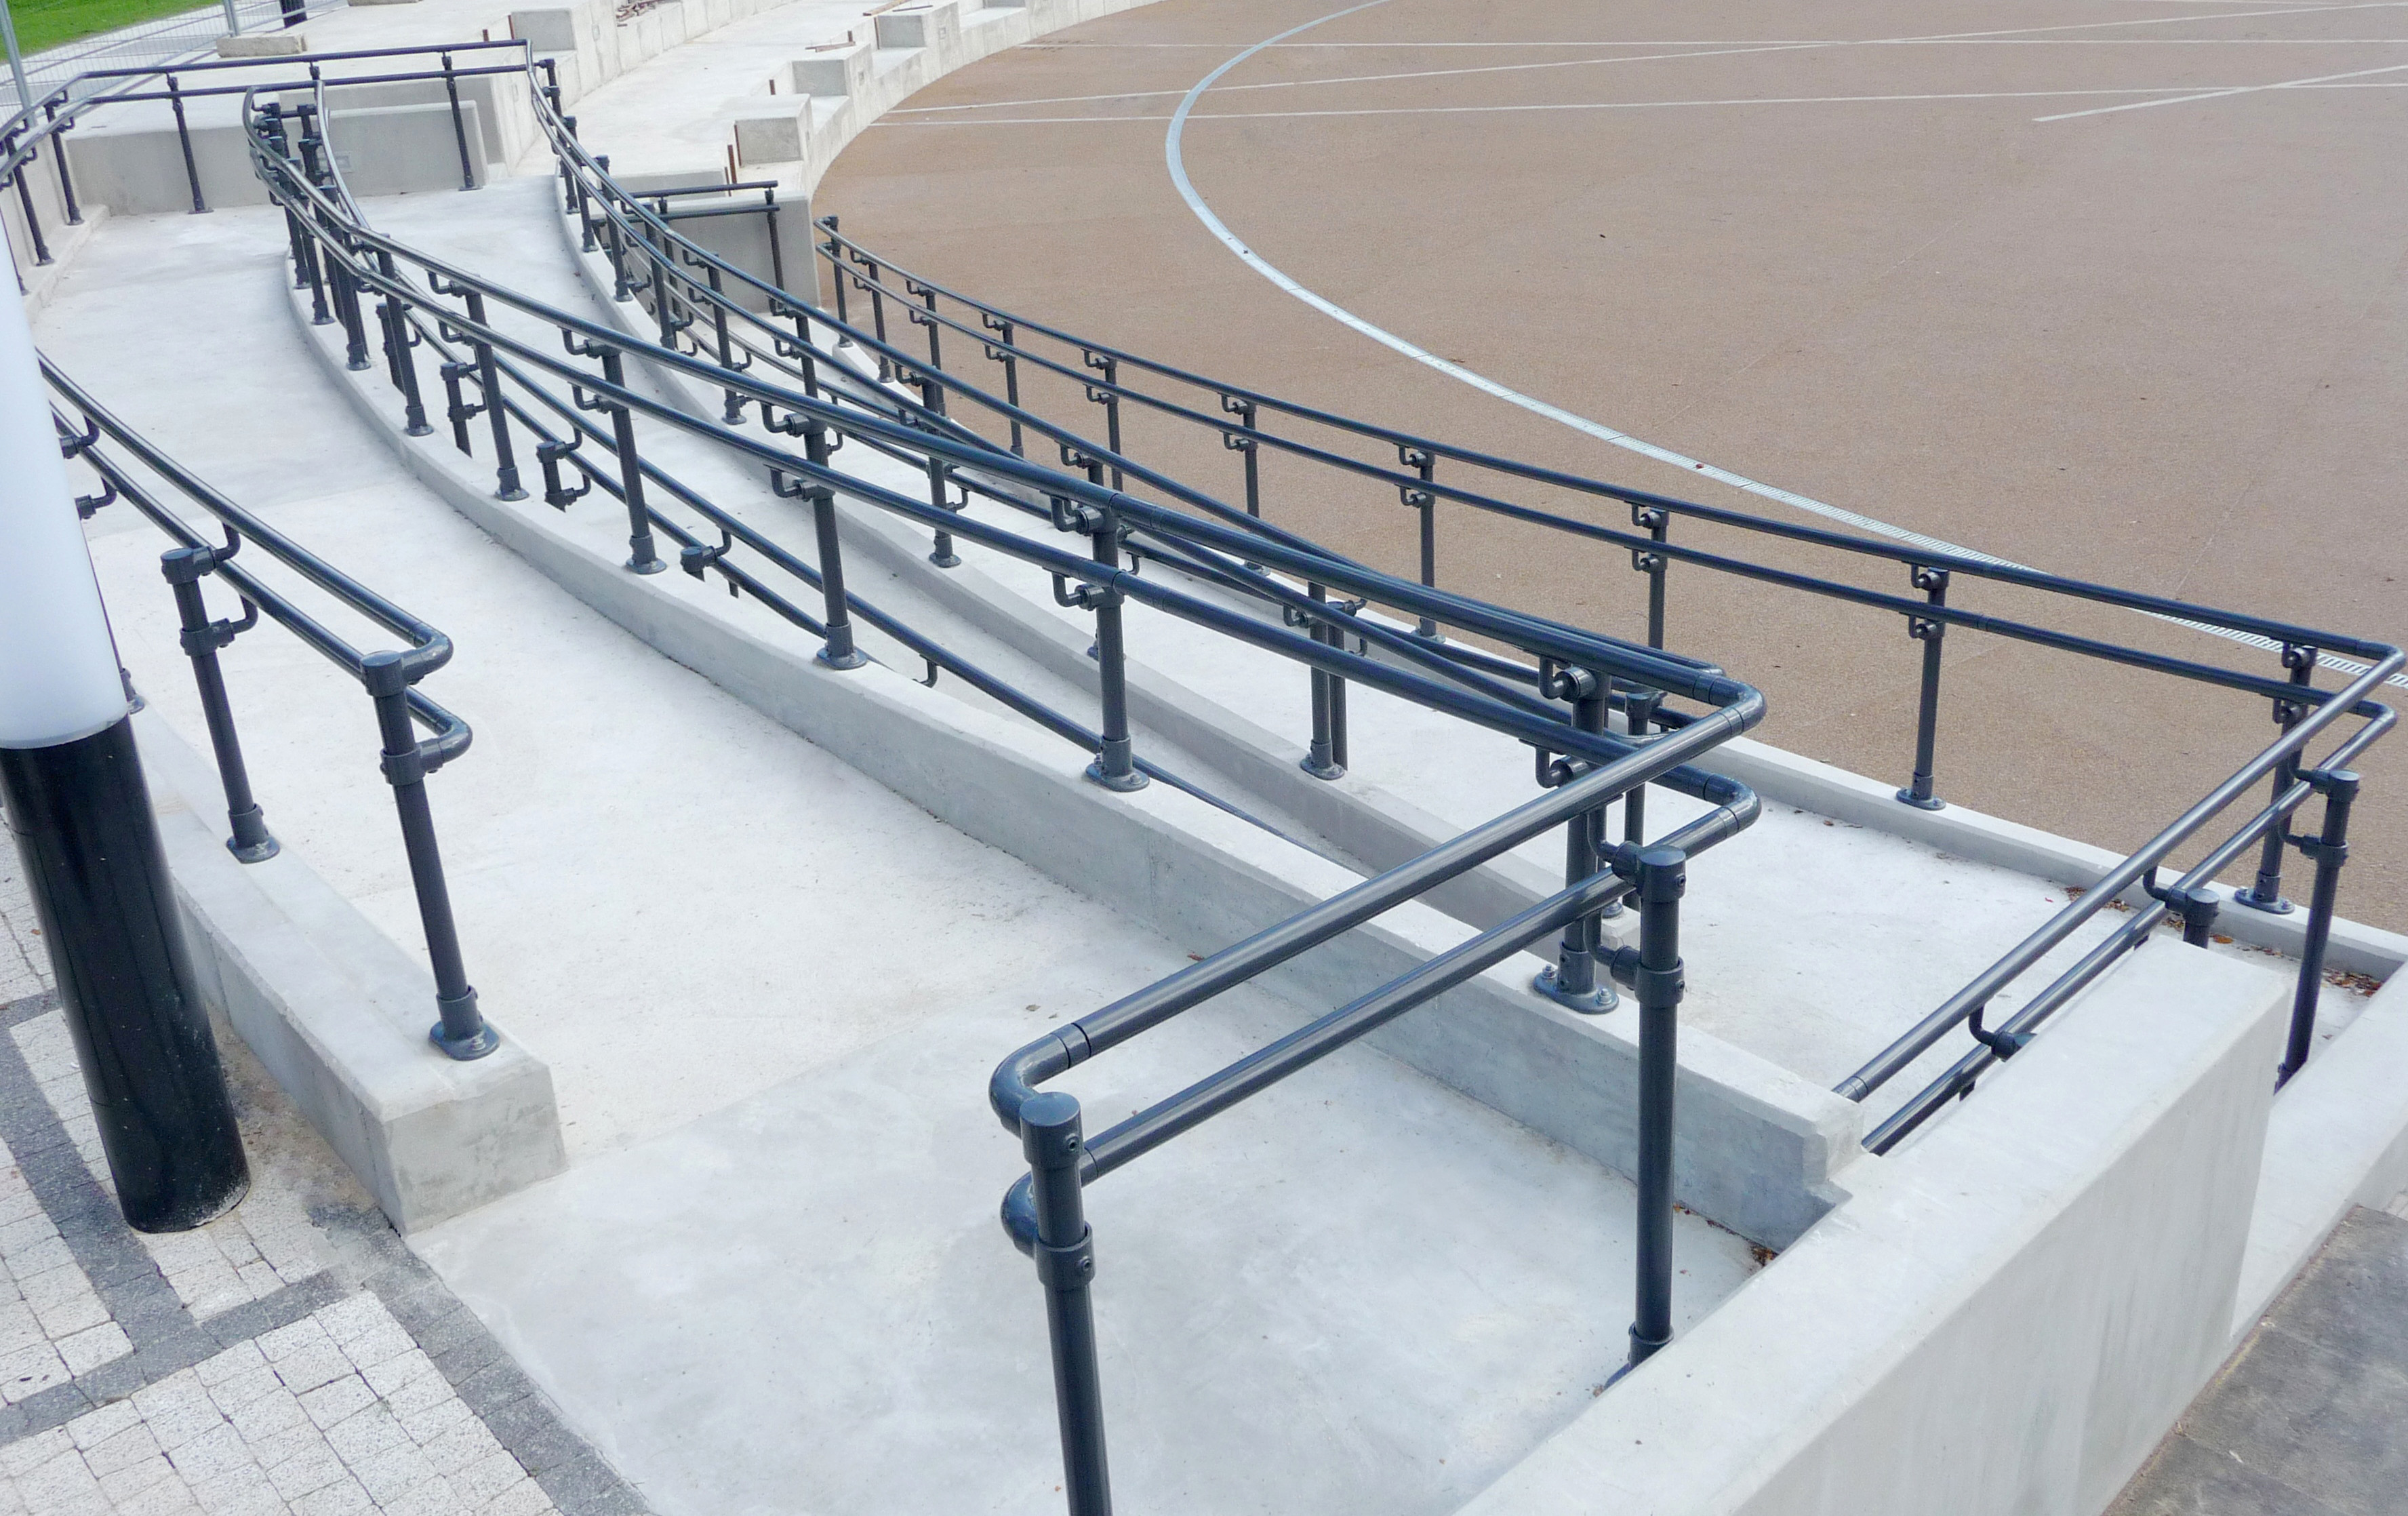 Build Cost Effective ADA Handrails Efficiently without Welding ...